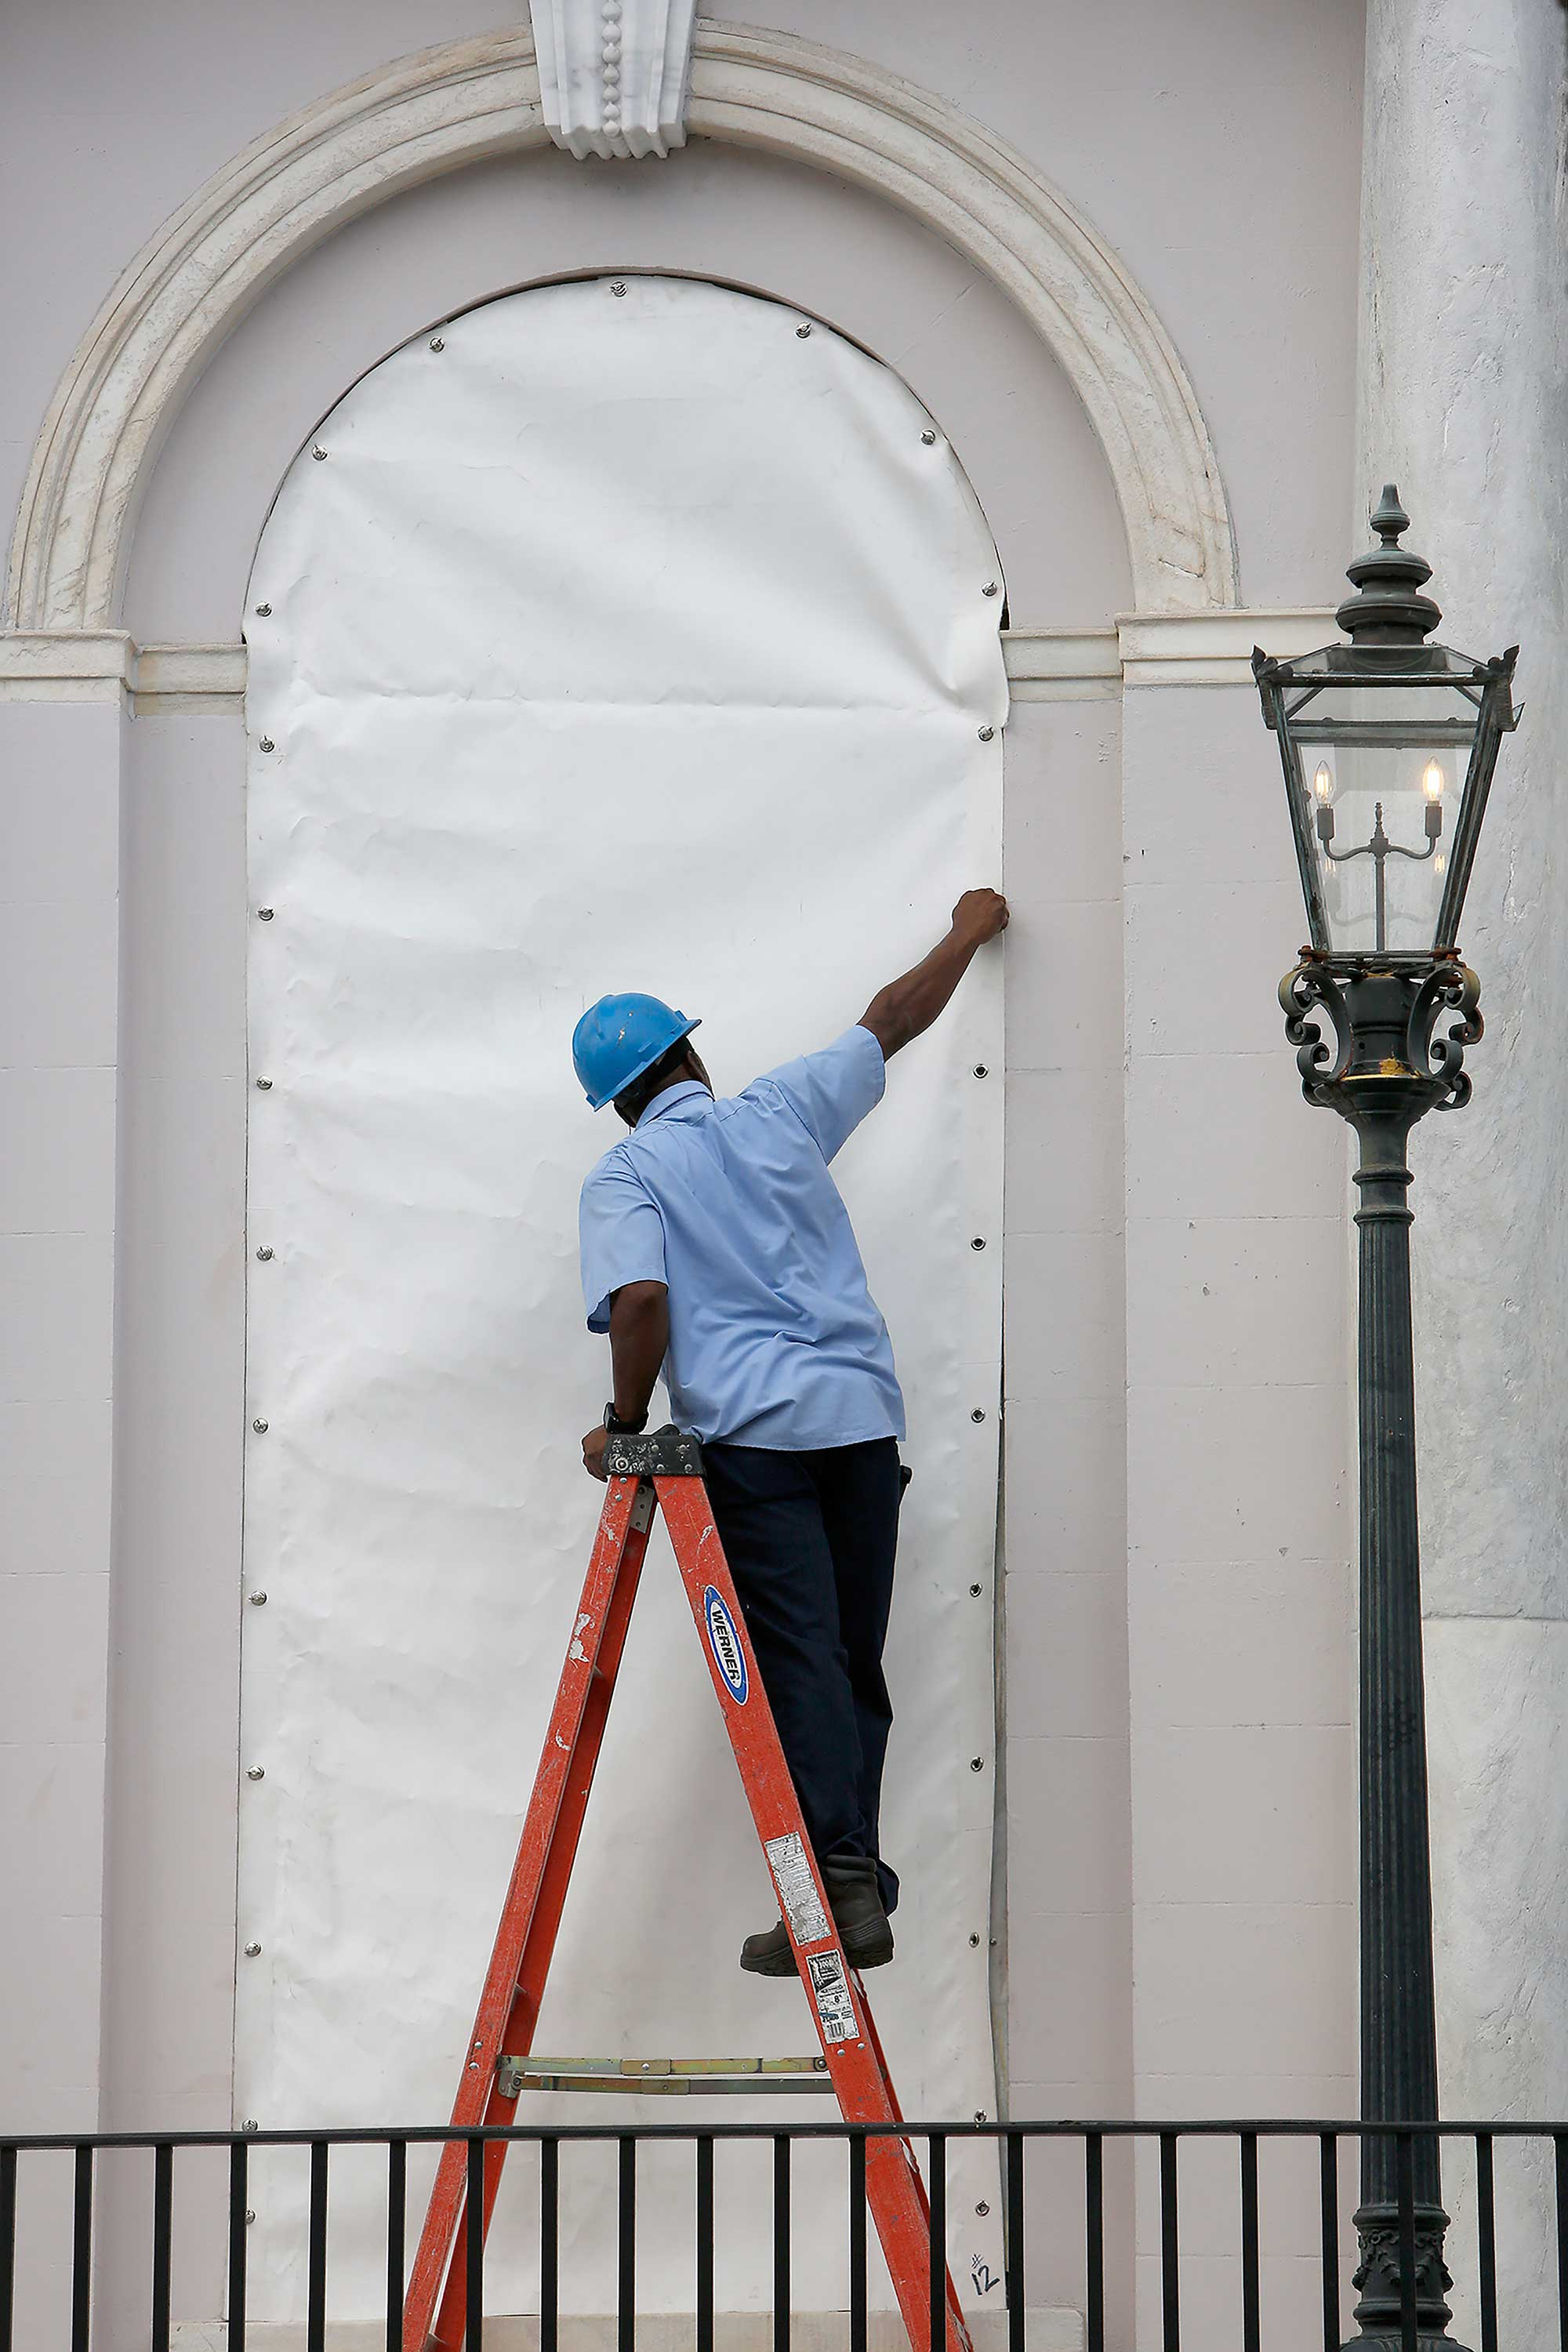 "<div class=""meta image-caption""><div class=""origin-logo origin-image none""><span>none</span></div><span class=""caption-text"">A worker covers a window at Charleston City Hall in Charleston, S.C. (Mic Smith/AP Photo)</span></div>"